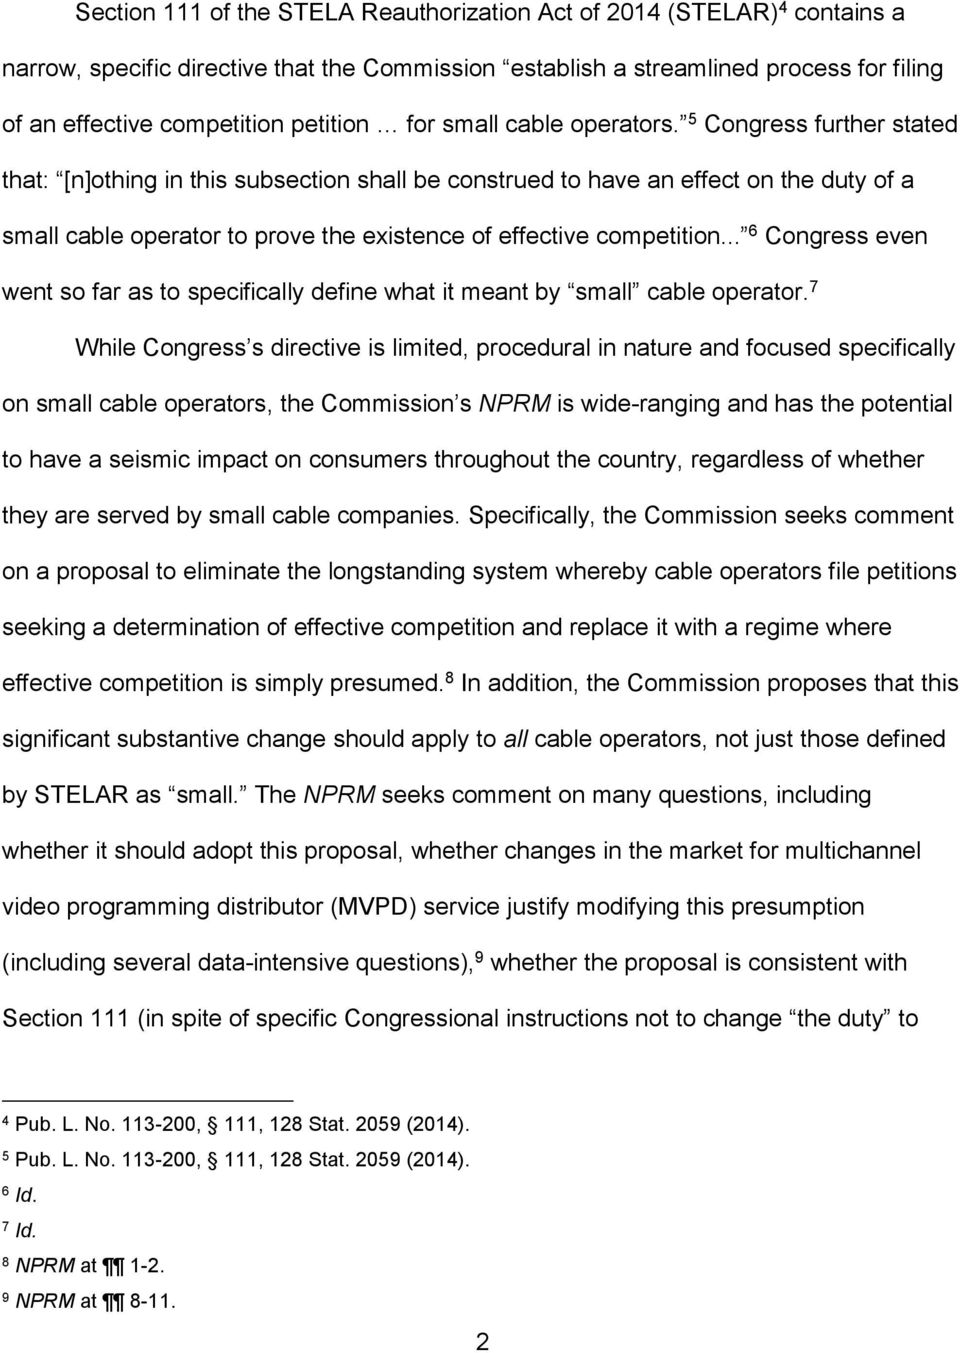 5 Congress further stated that: [n]othing in this subsection shall be construed to have an effect on the duty of a small cable operator to prove the existence of effective competition.